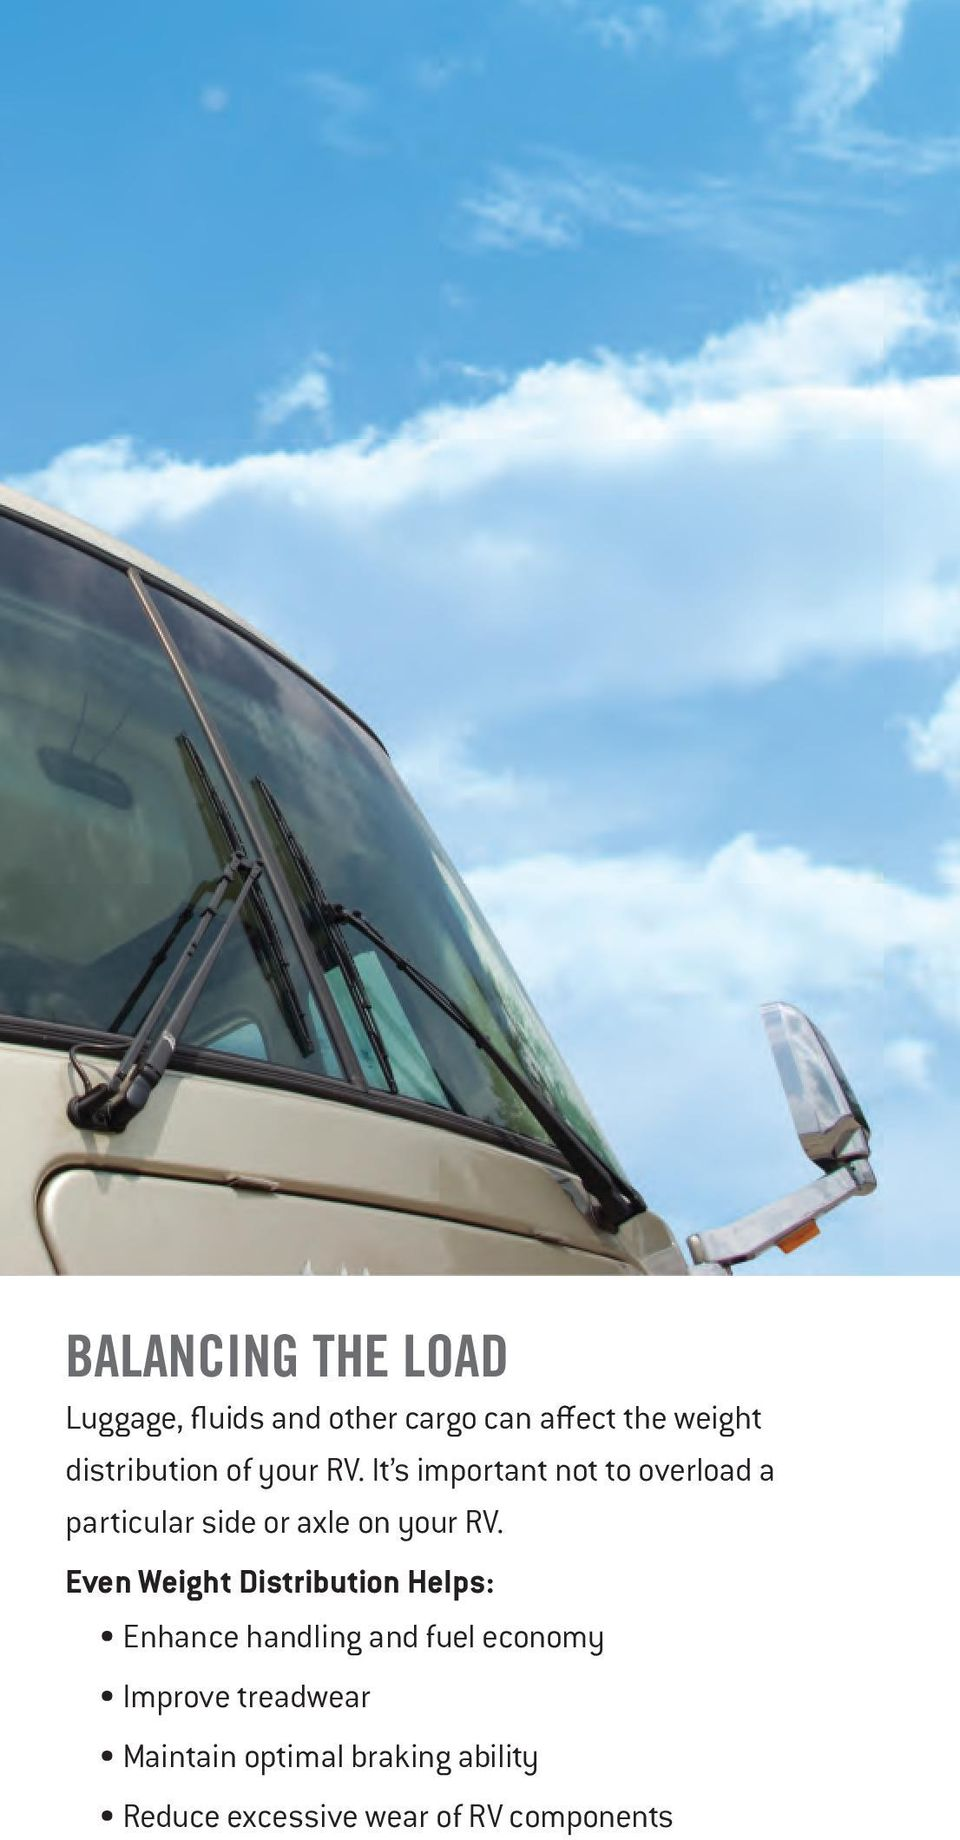 It s important not to overload a particular side or axle on your RV.